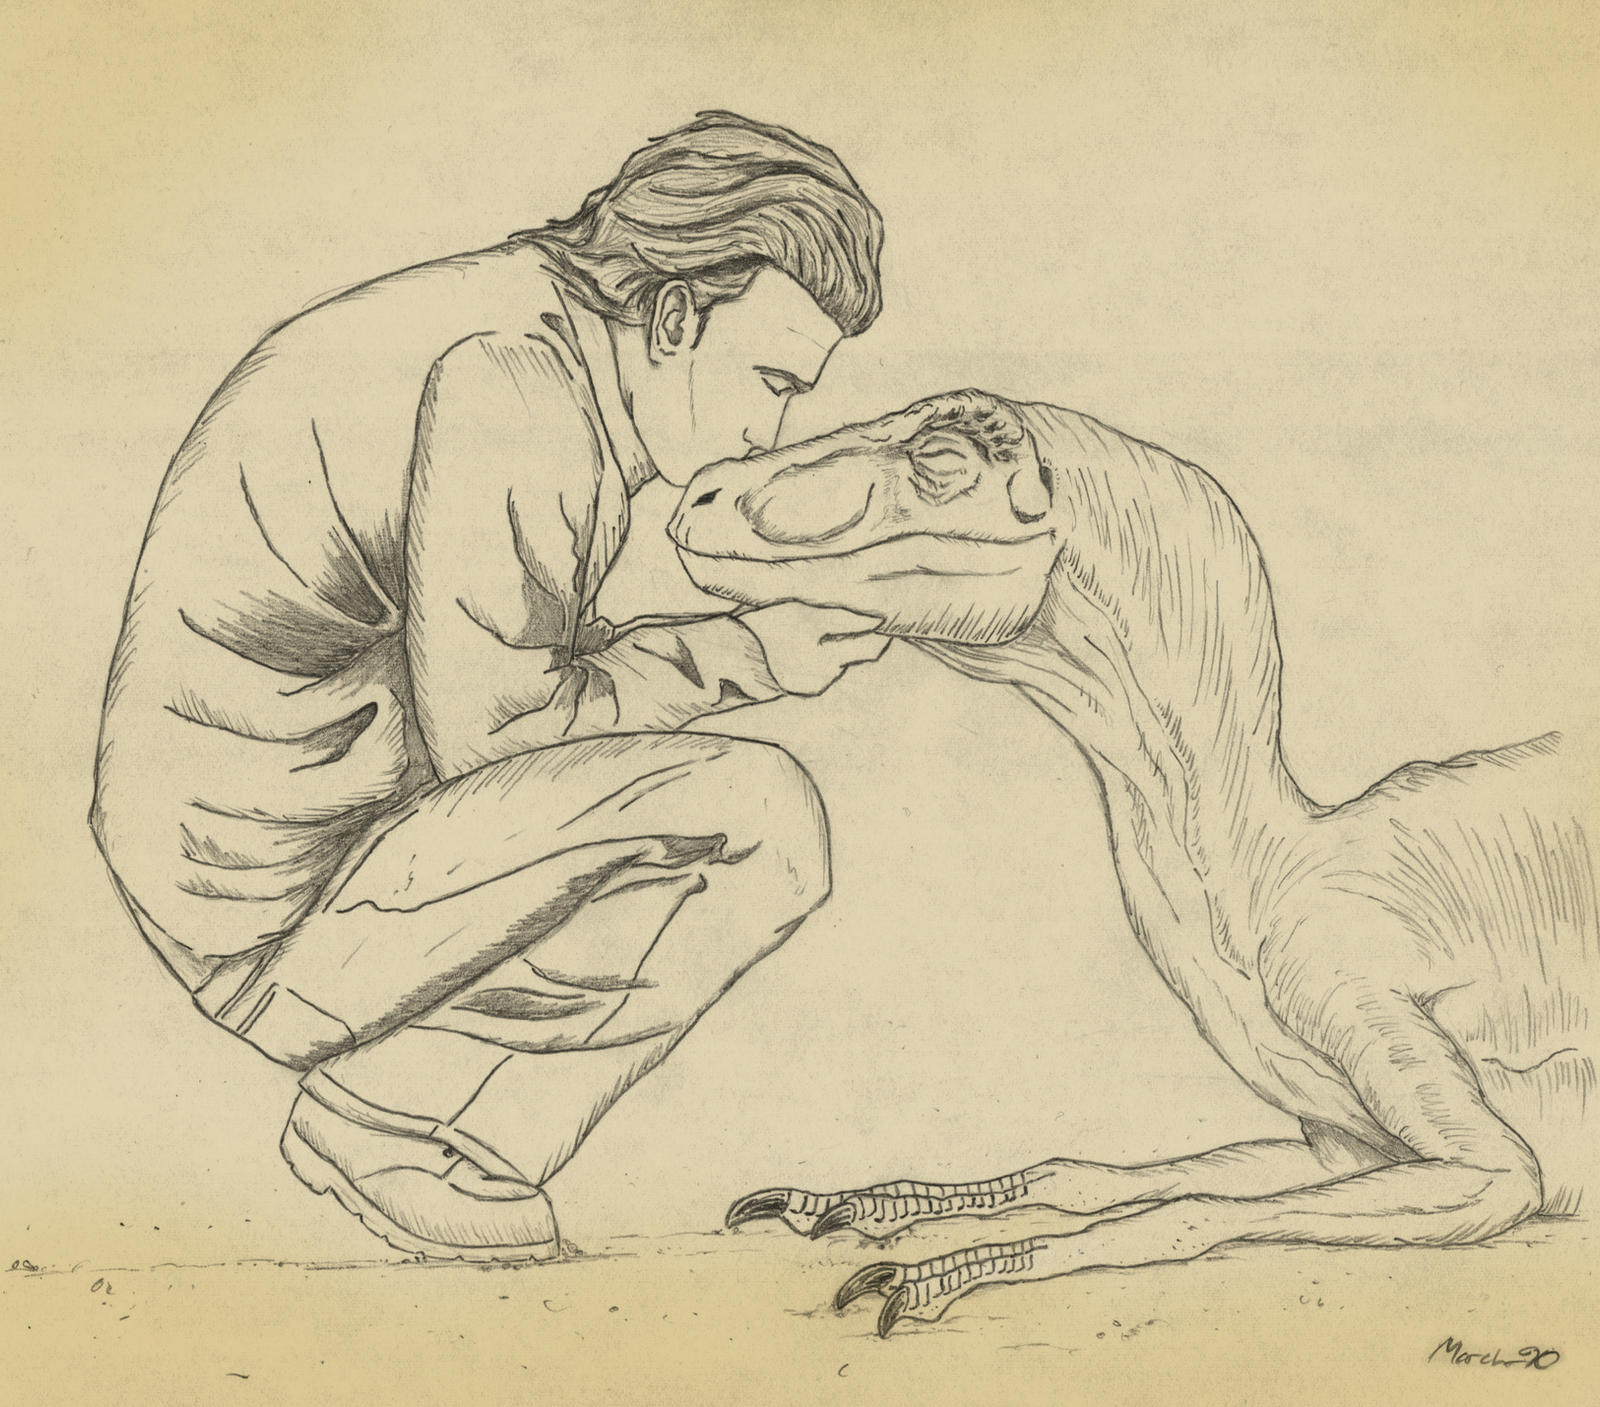 richard_levine_and_velociraptor_by_march90-d7wmhqk.jpg